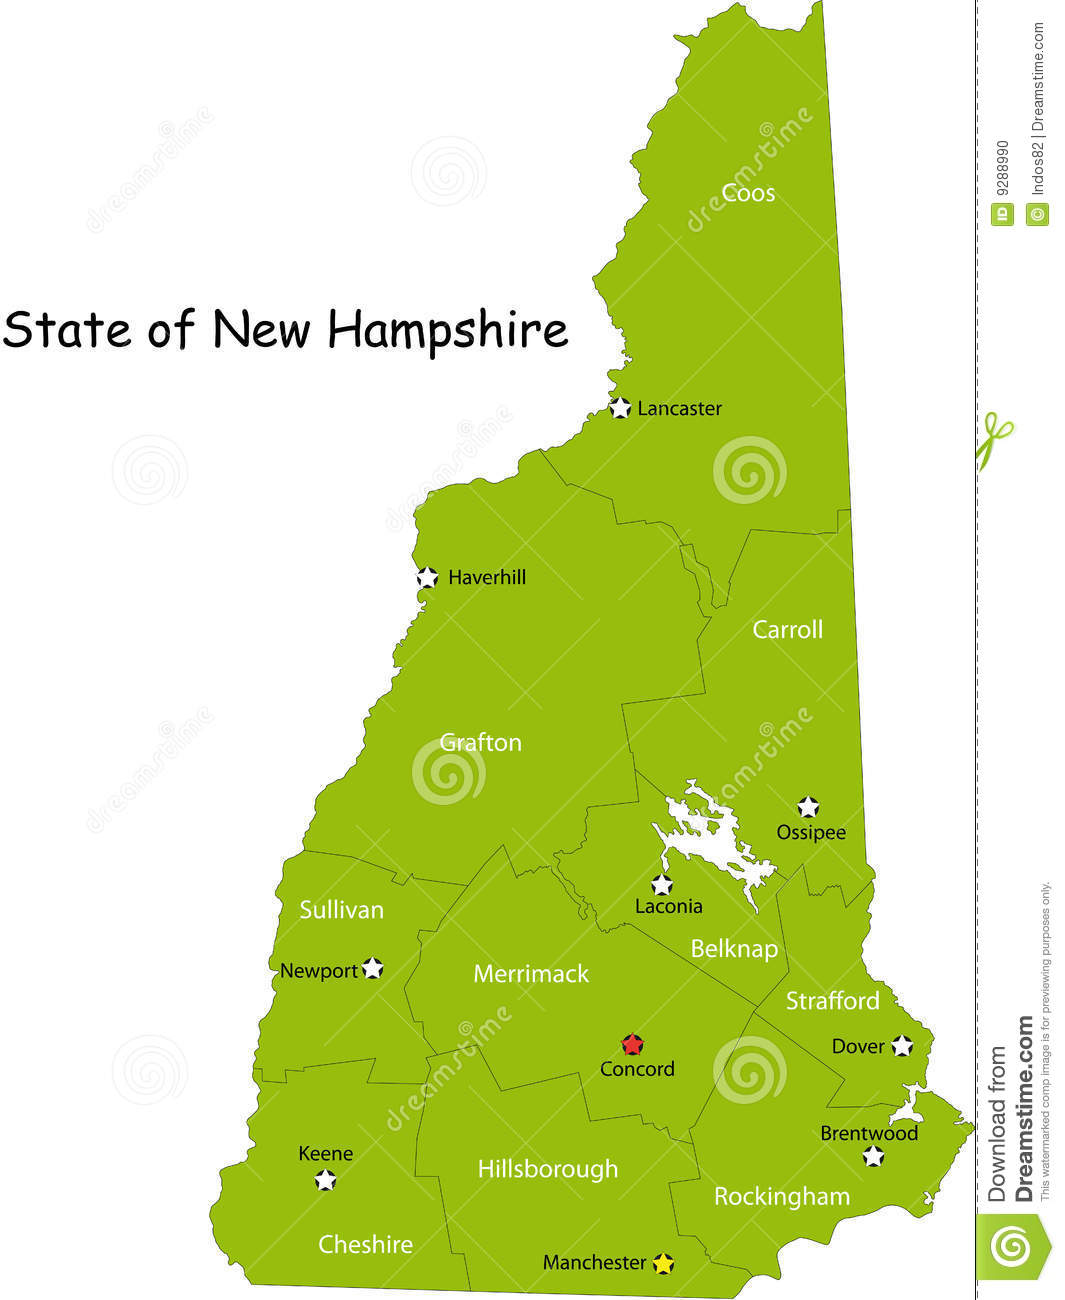 map of cheshire county nh with Stock Photo Map New H Shire State Image9288990 on New H shire 27s 2nd congressional district additionally West Chesterfield additionally Marlow likewise Reference also Stock Photo Map New H shire State Image9288990.